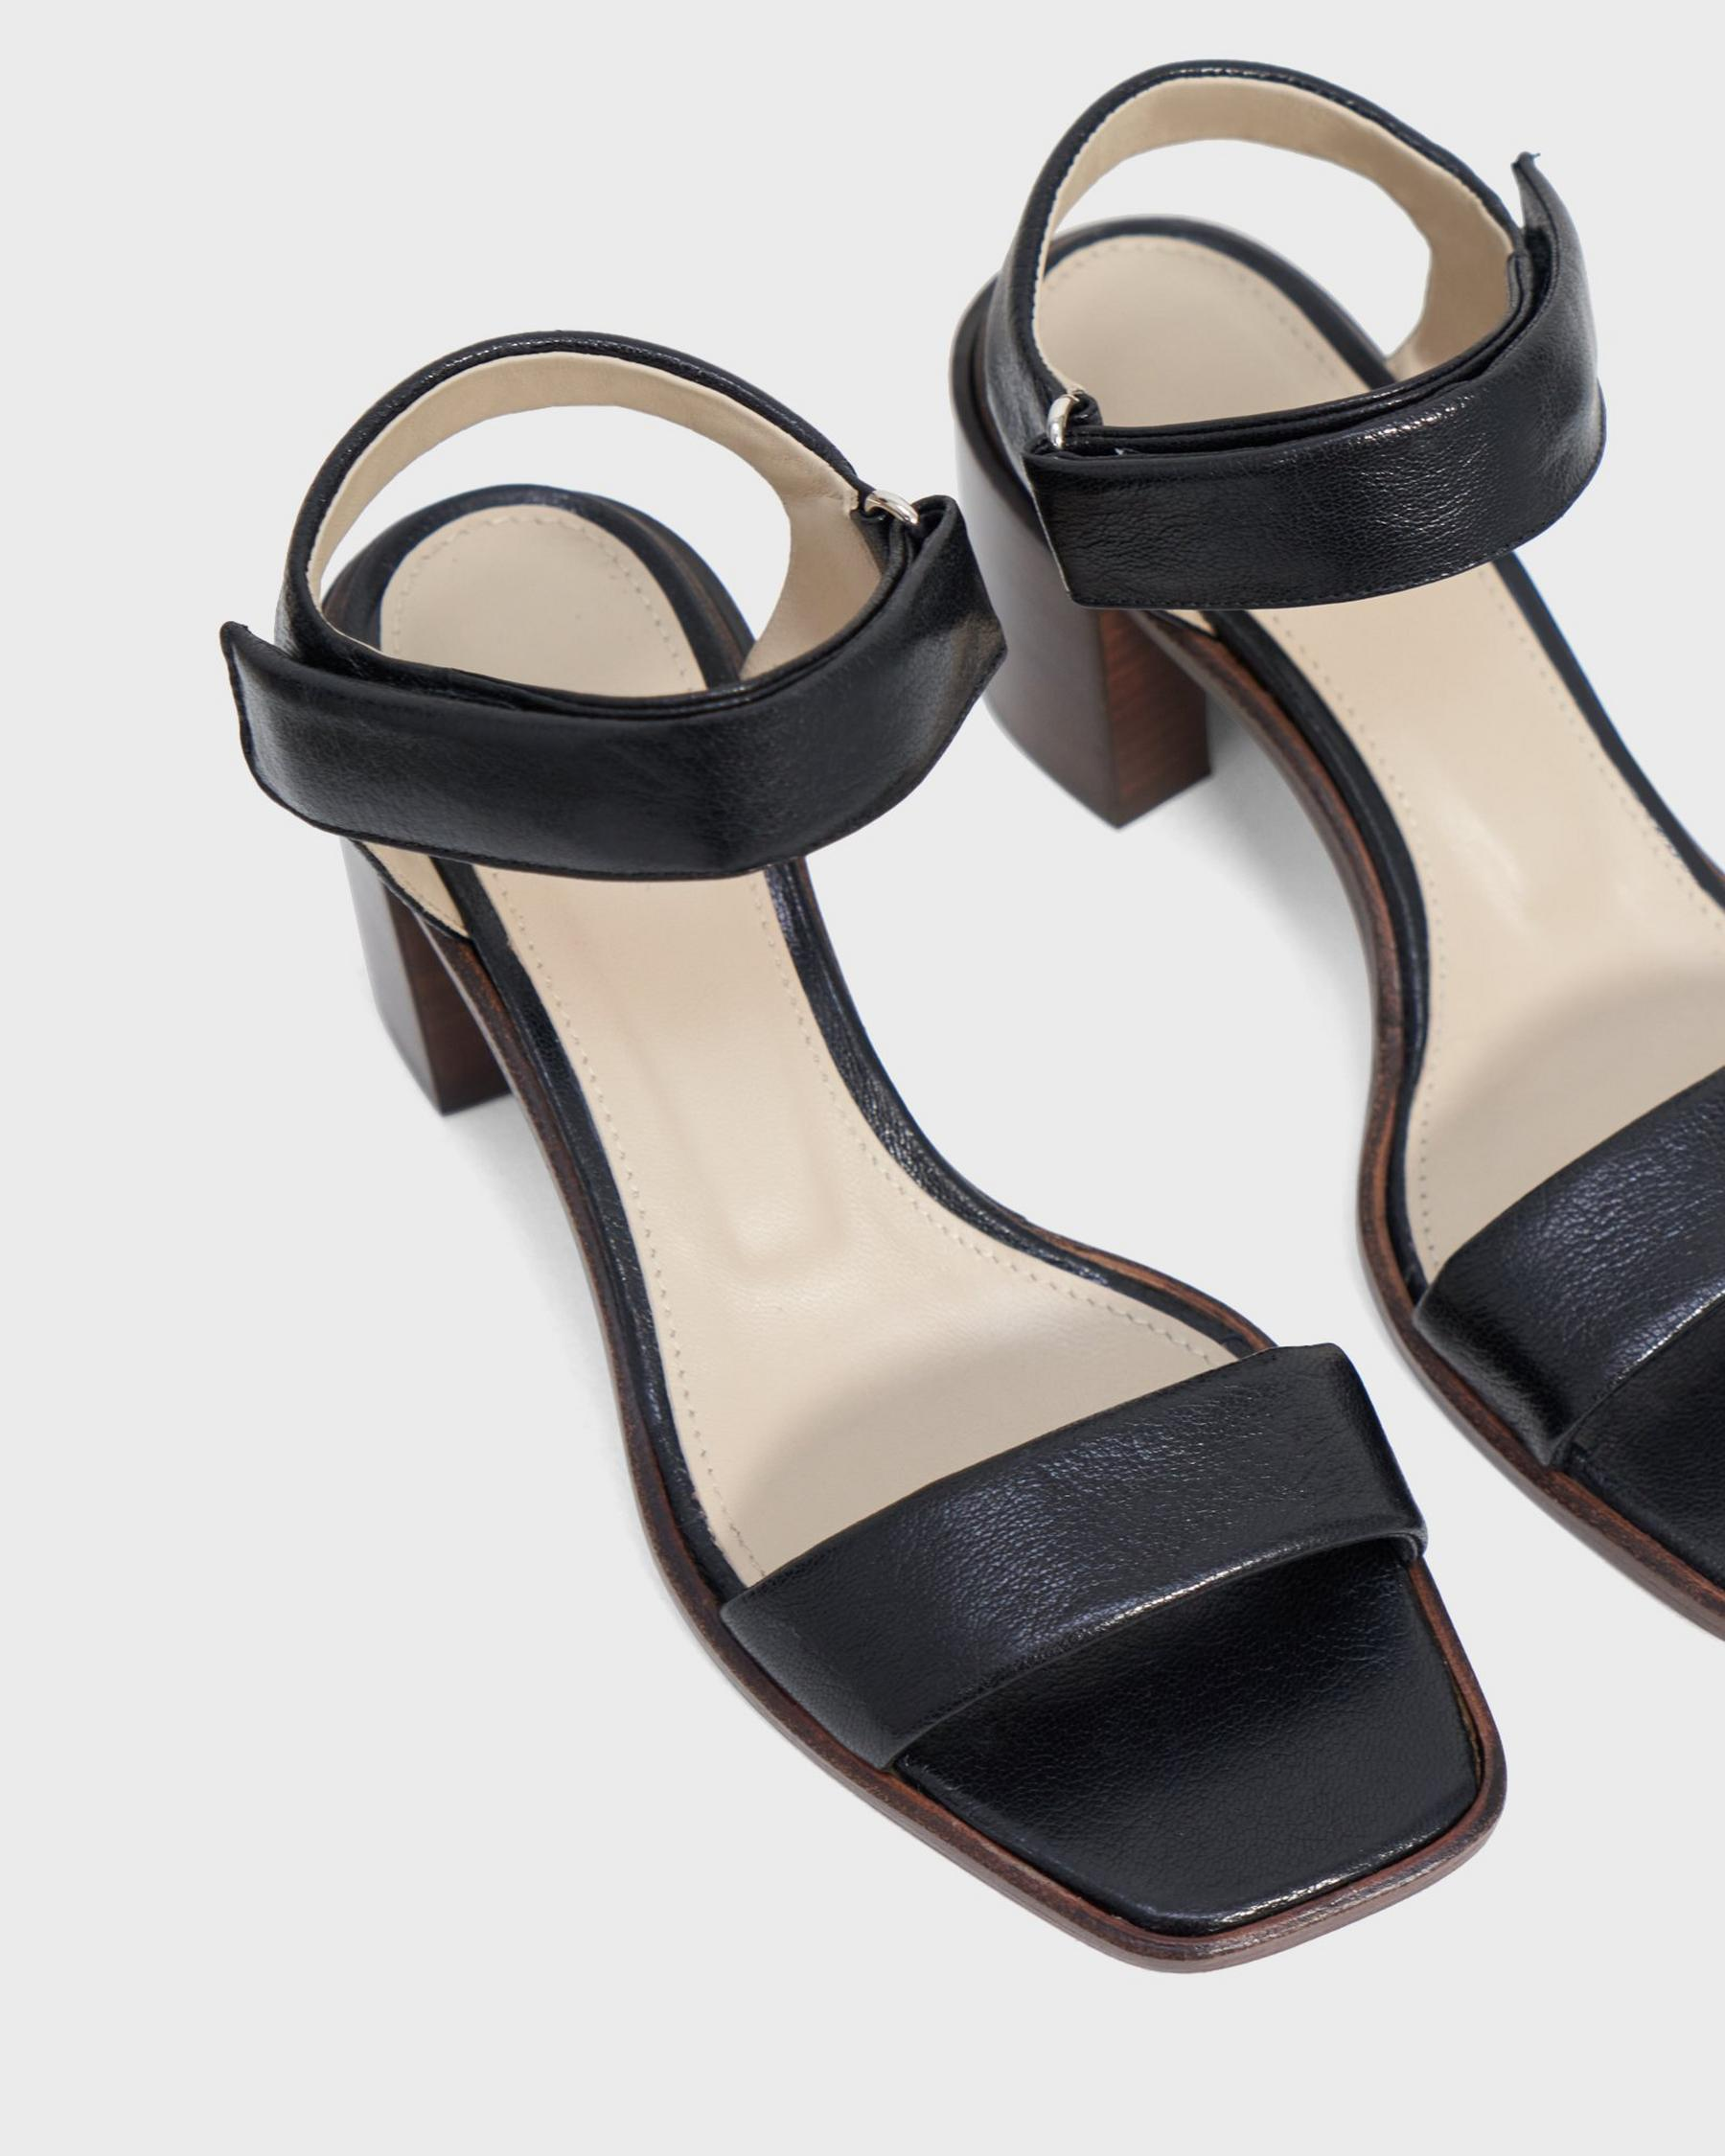 Mid-Ankle Strap Sandal in Leather